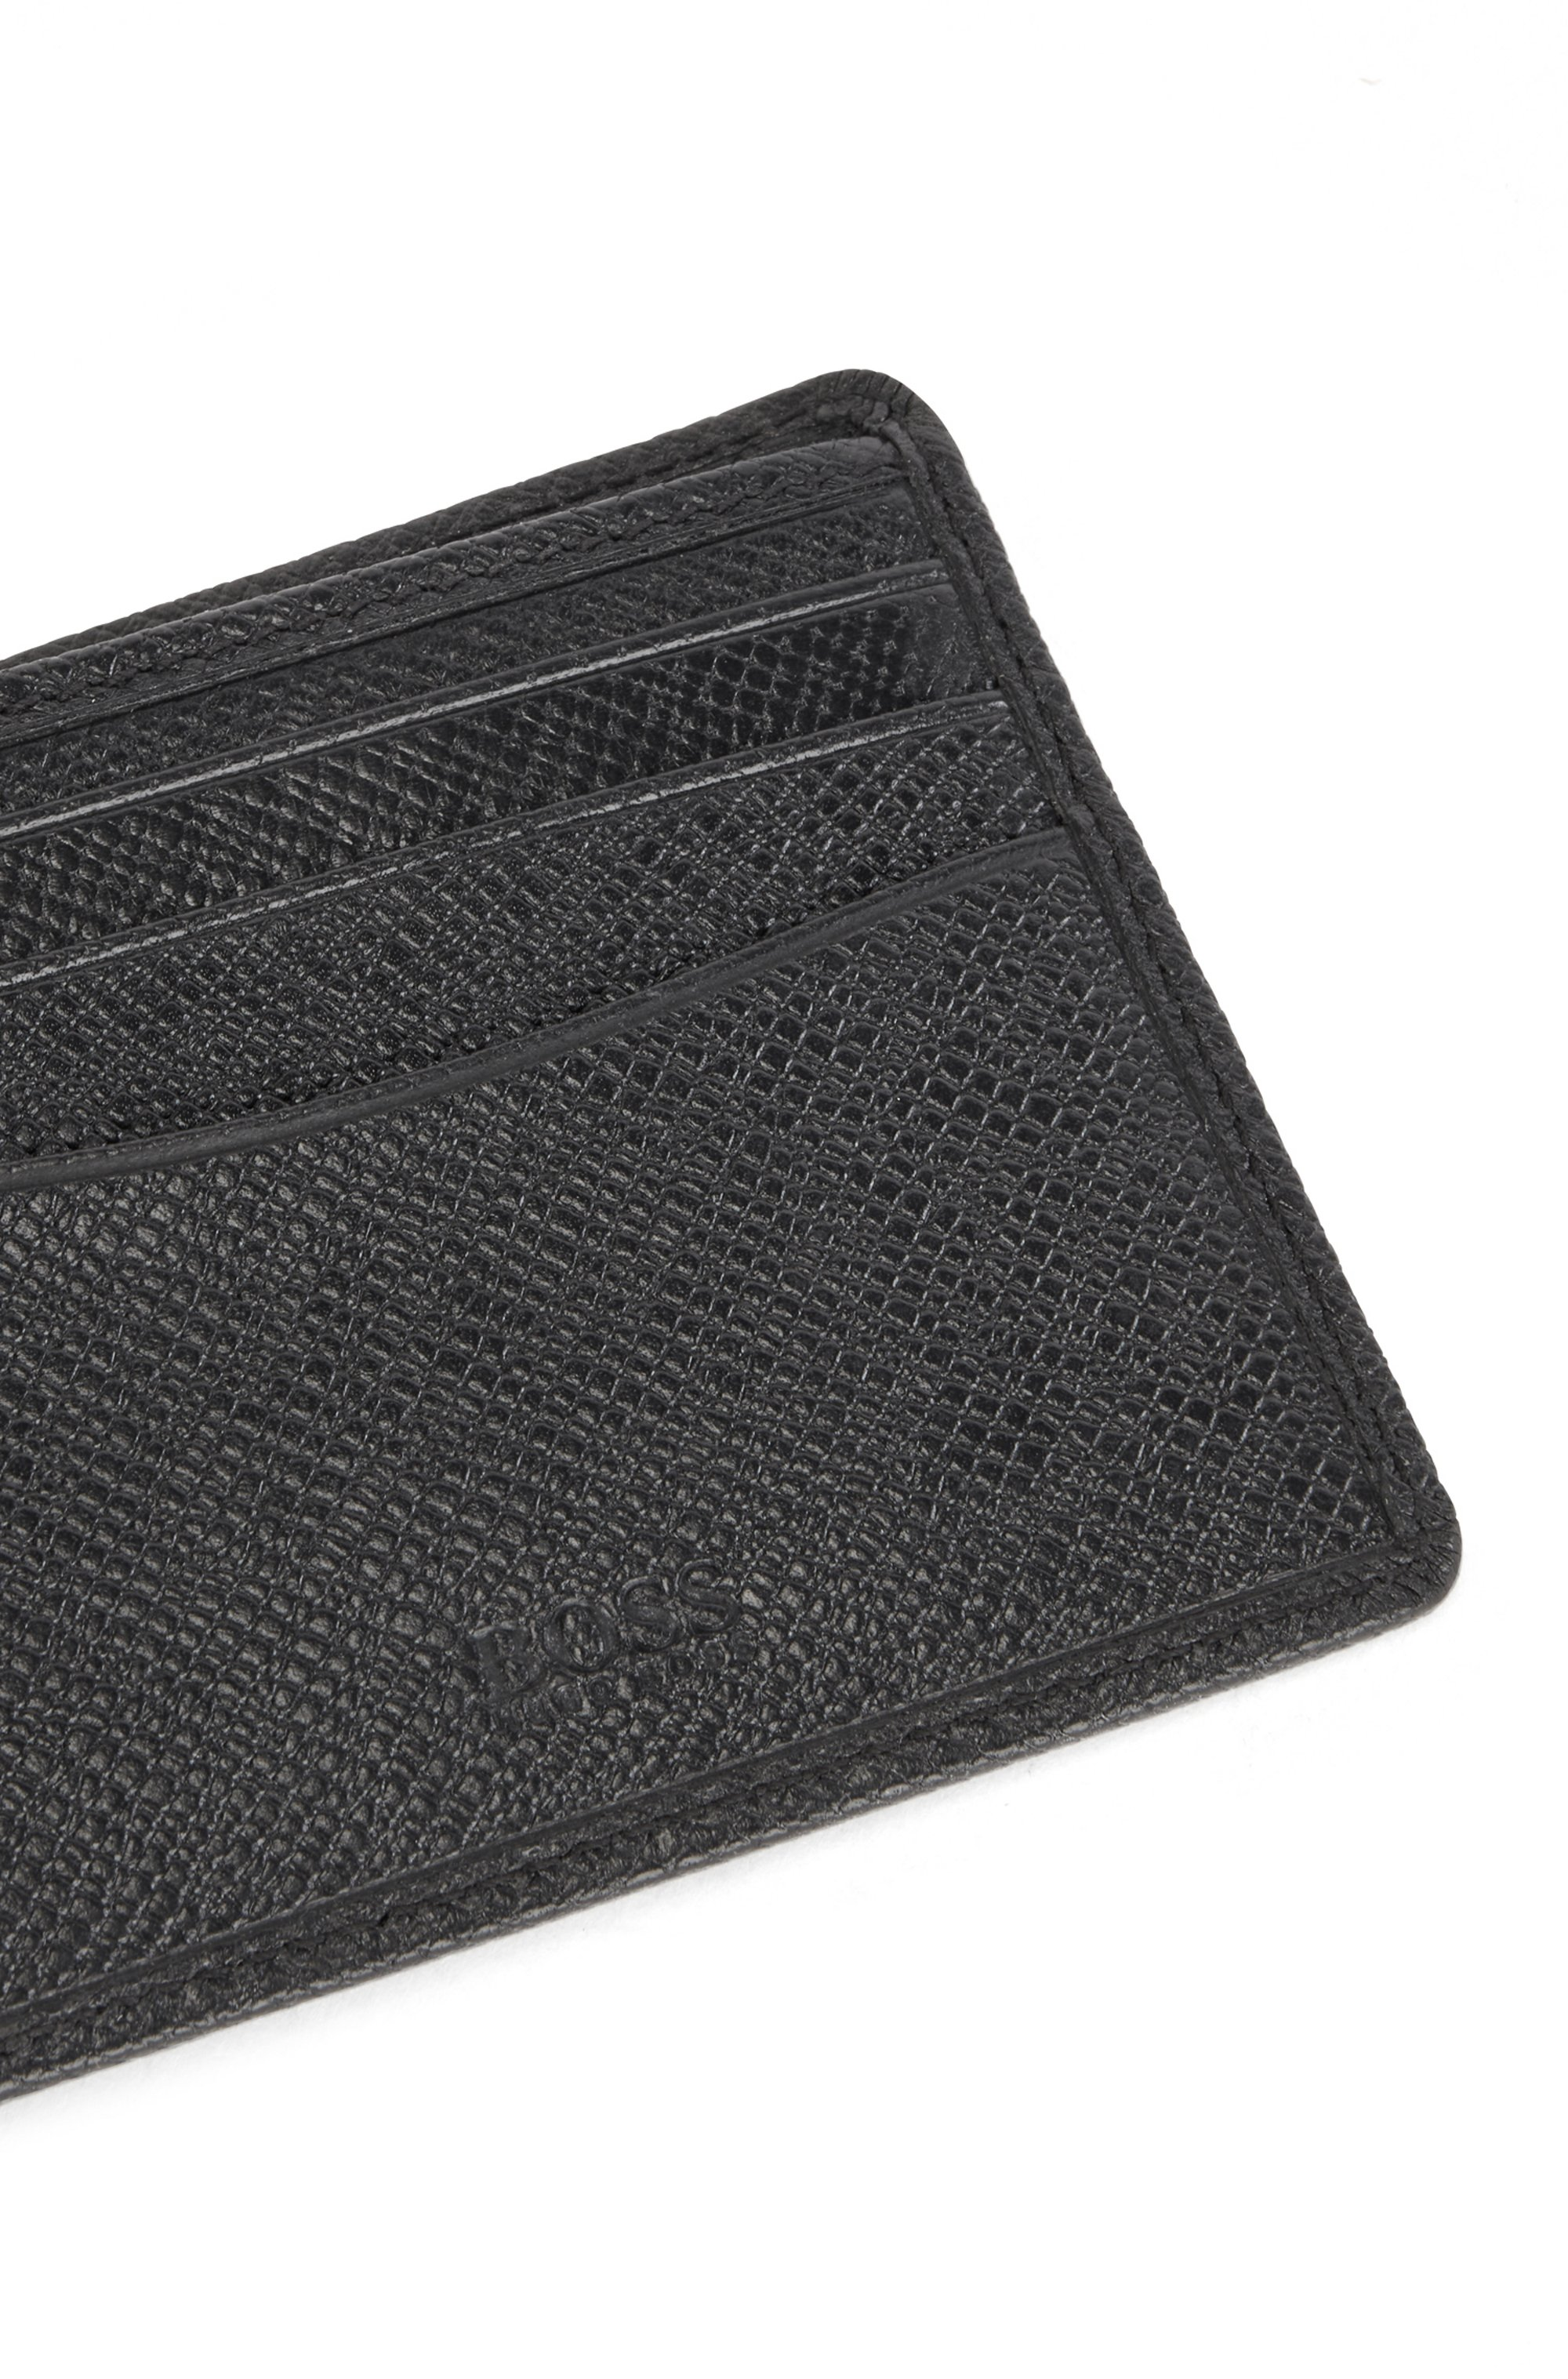 Signature Collection billfold wallet in palmellato leather